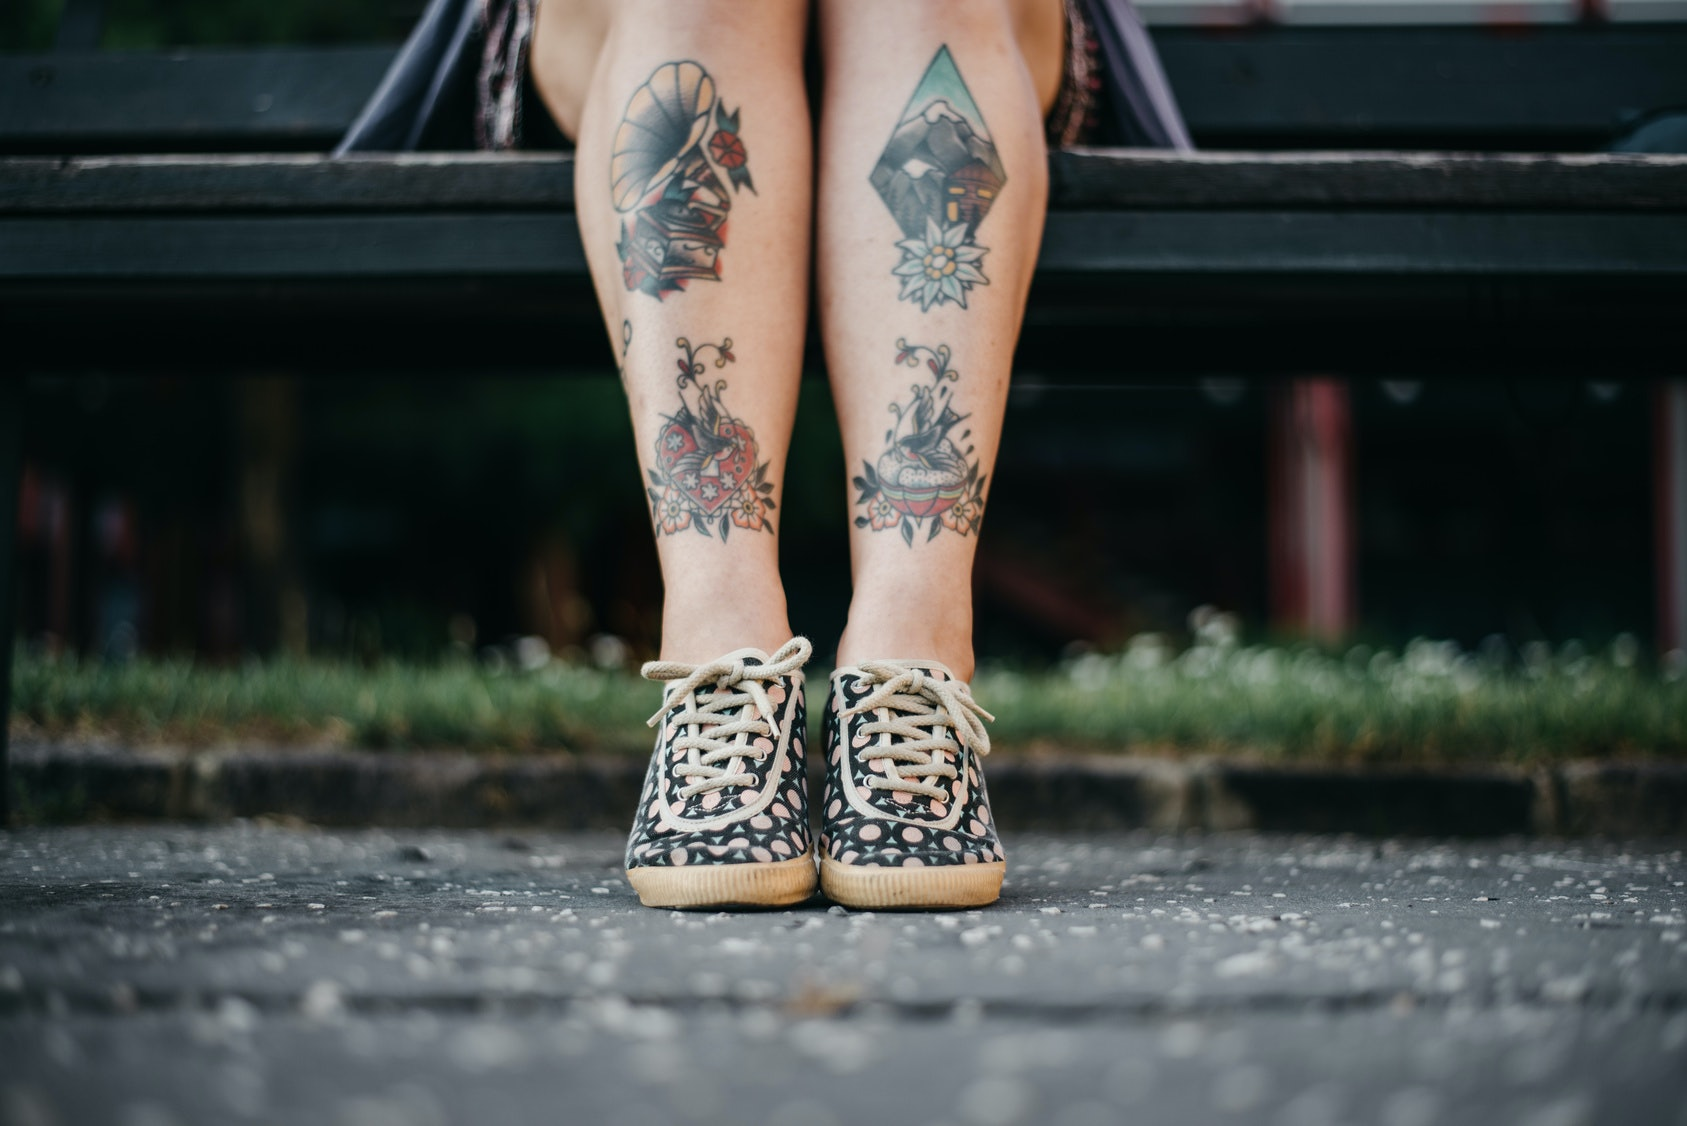 11 Most Common Ways People Ruin Their Tattoos According To Tattoo